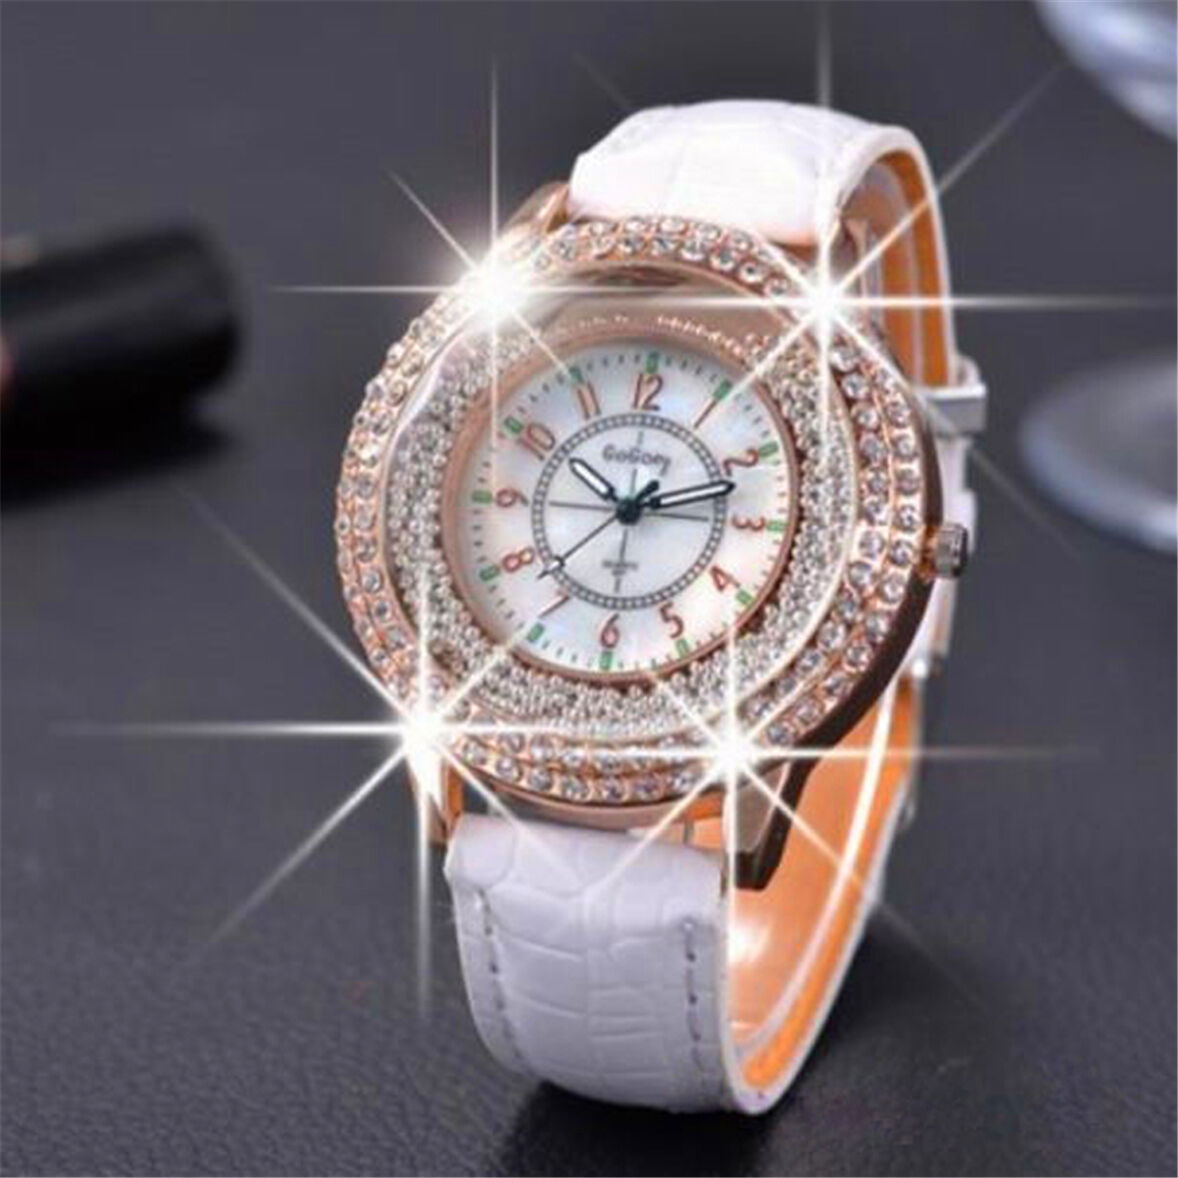 Luxury Women Watch Bling Crystal Dial Quartz Analog Leather Bracelet Wrist UK